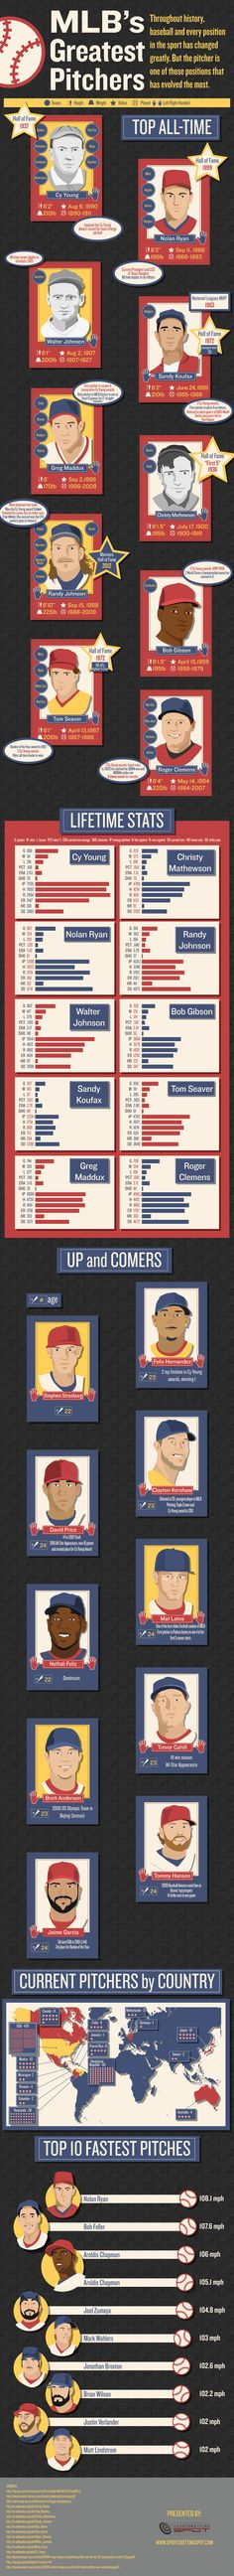 MLB's Greatest Pitchers #infographic